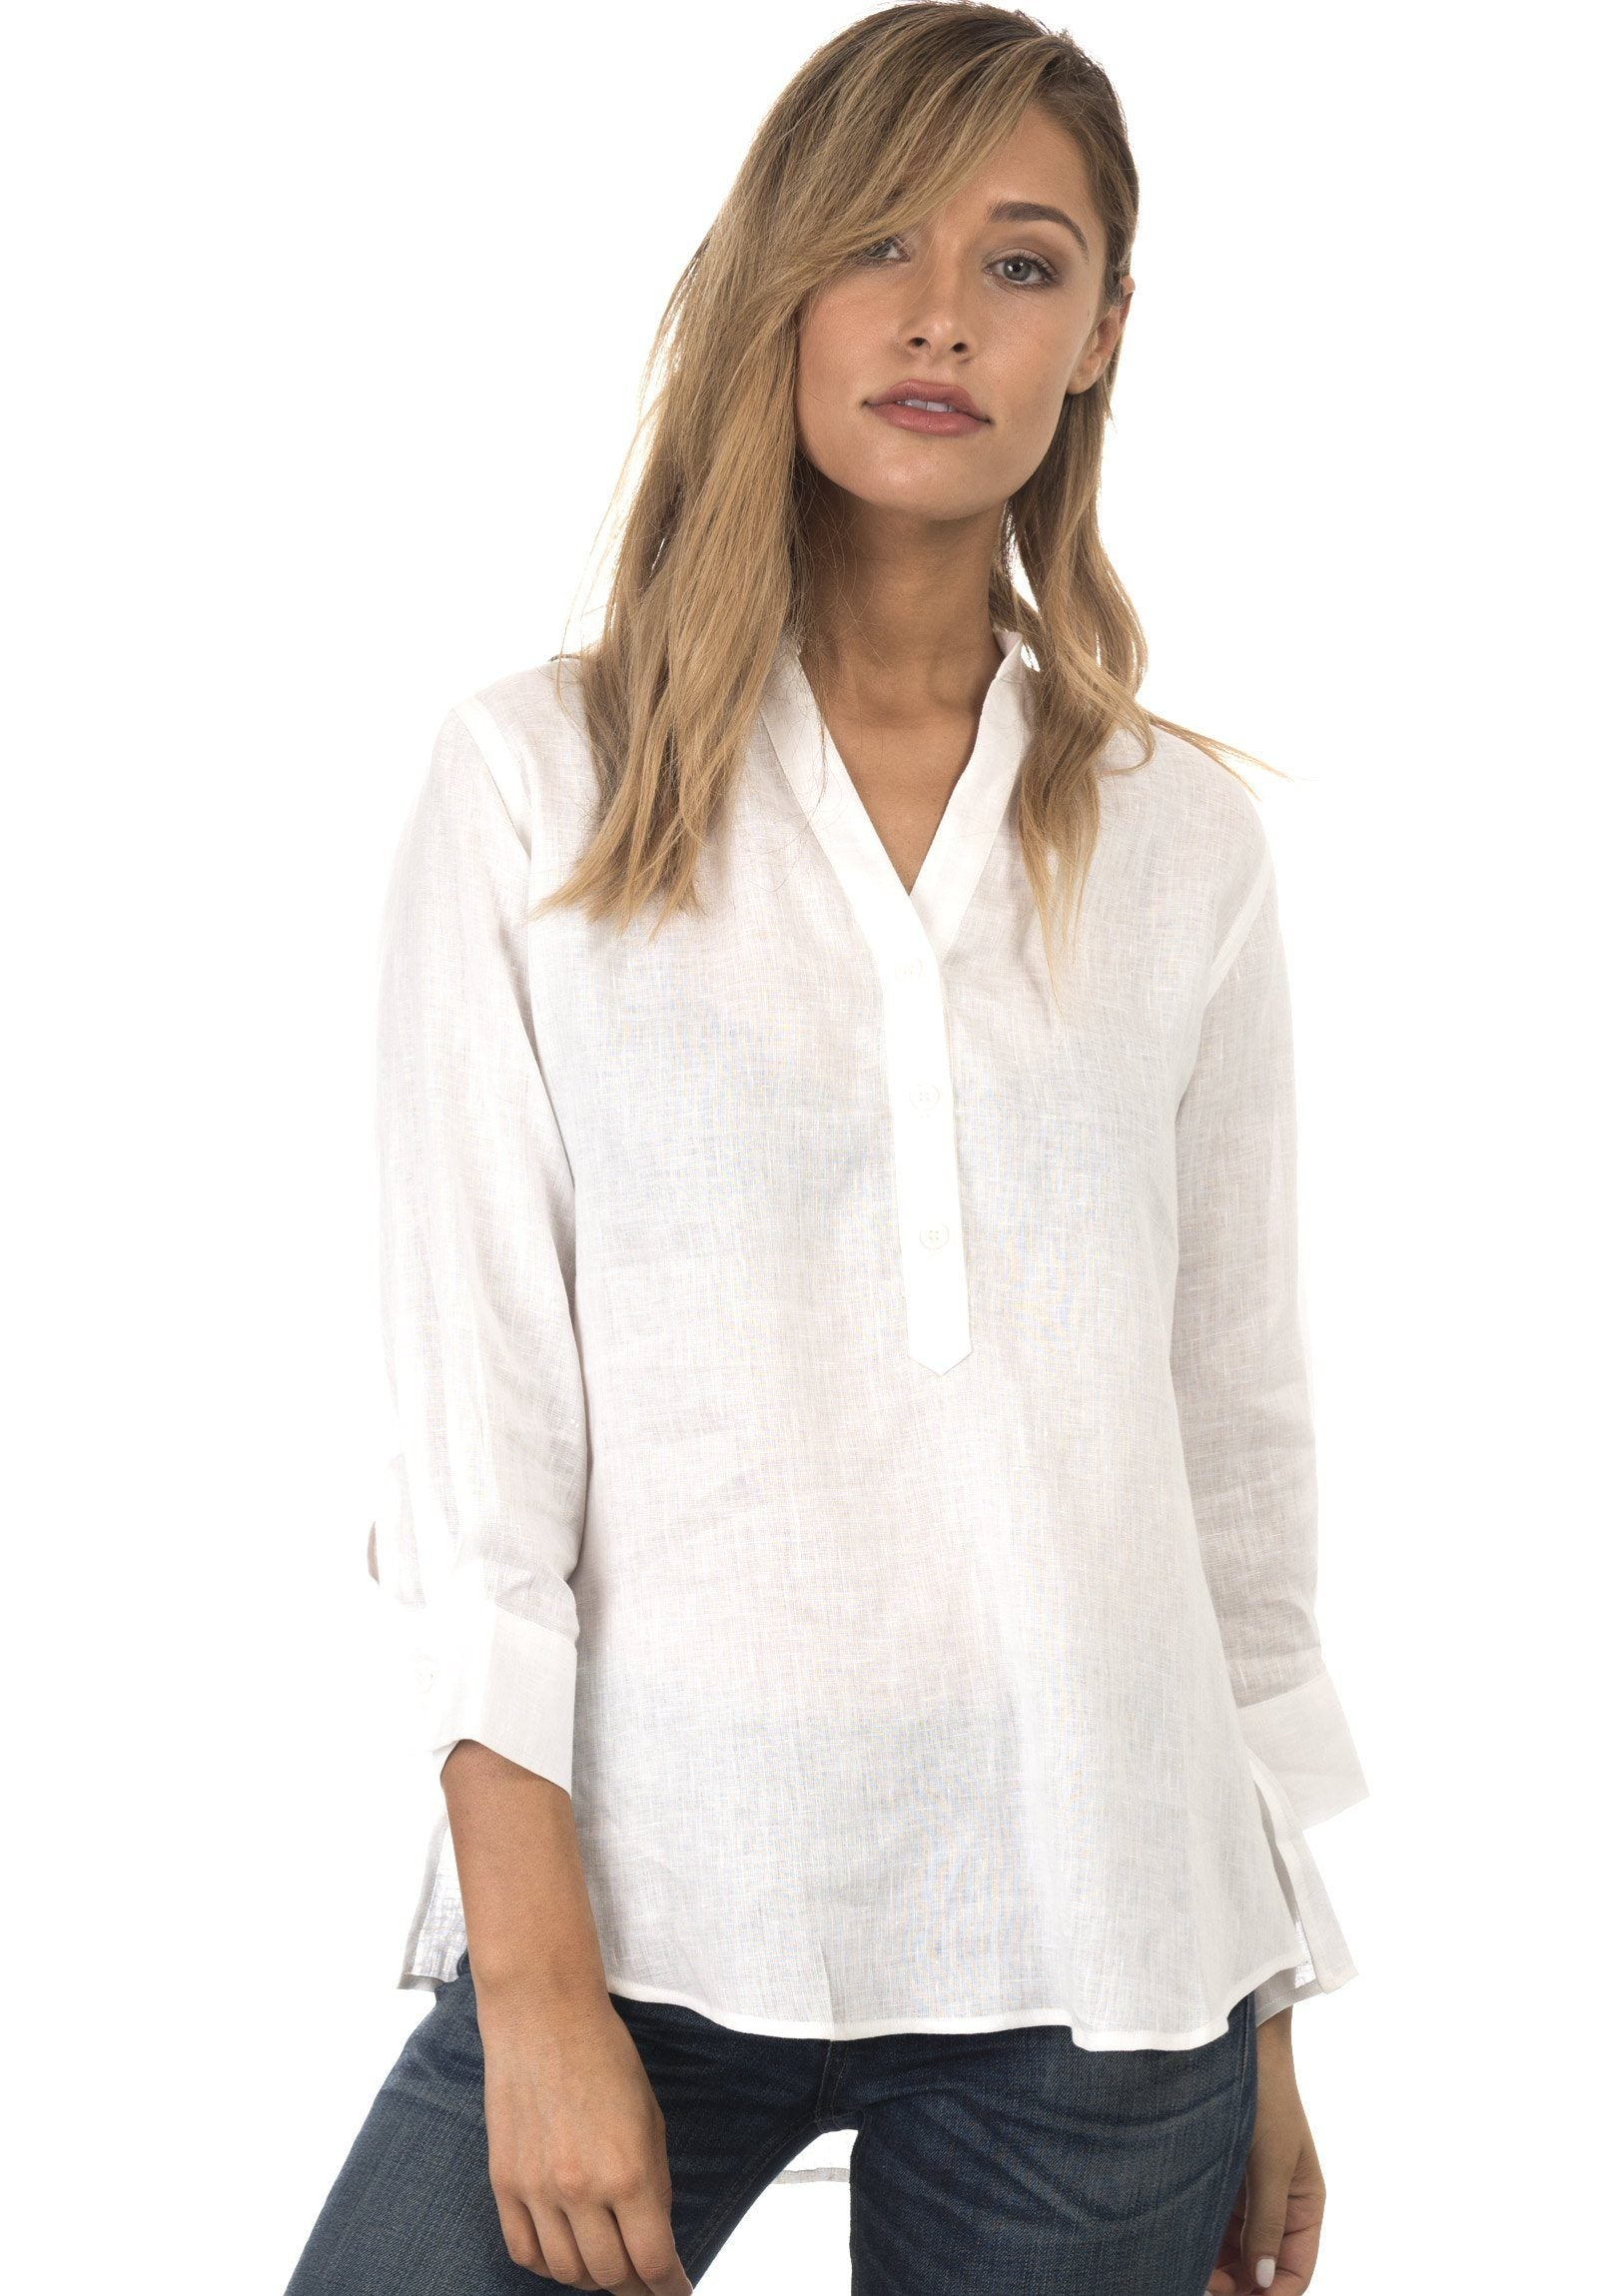 Kim, White Pop-Over Linen Tunic Shirt